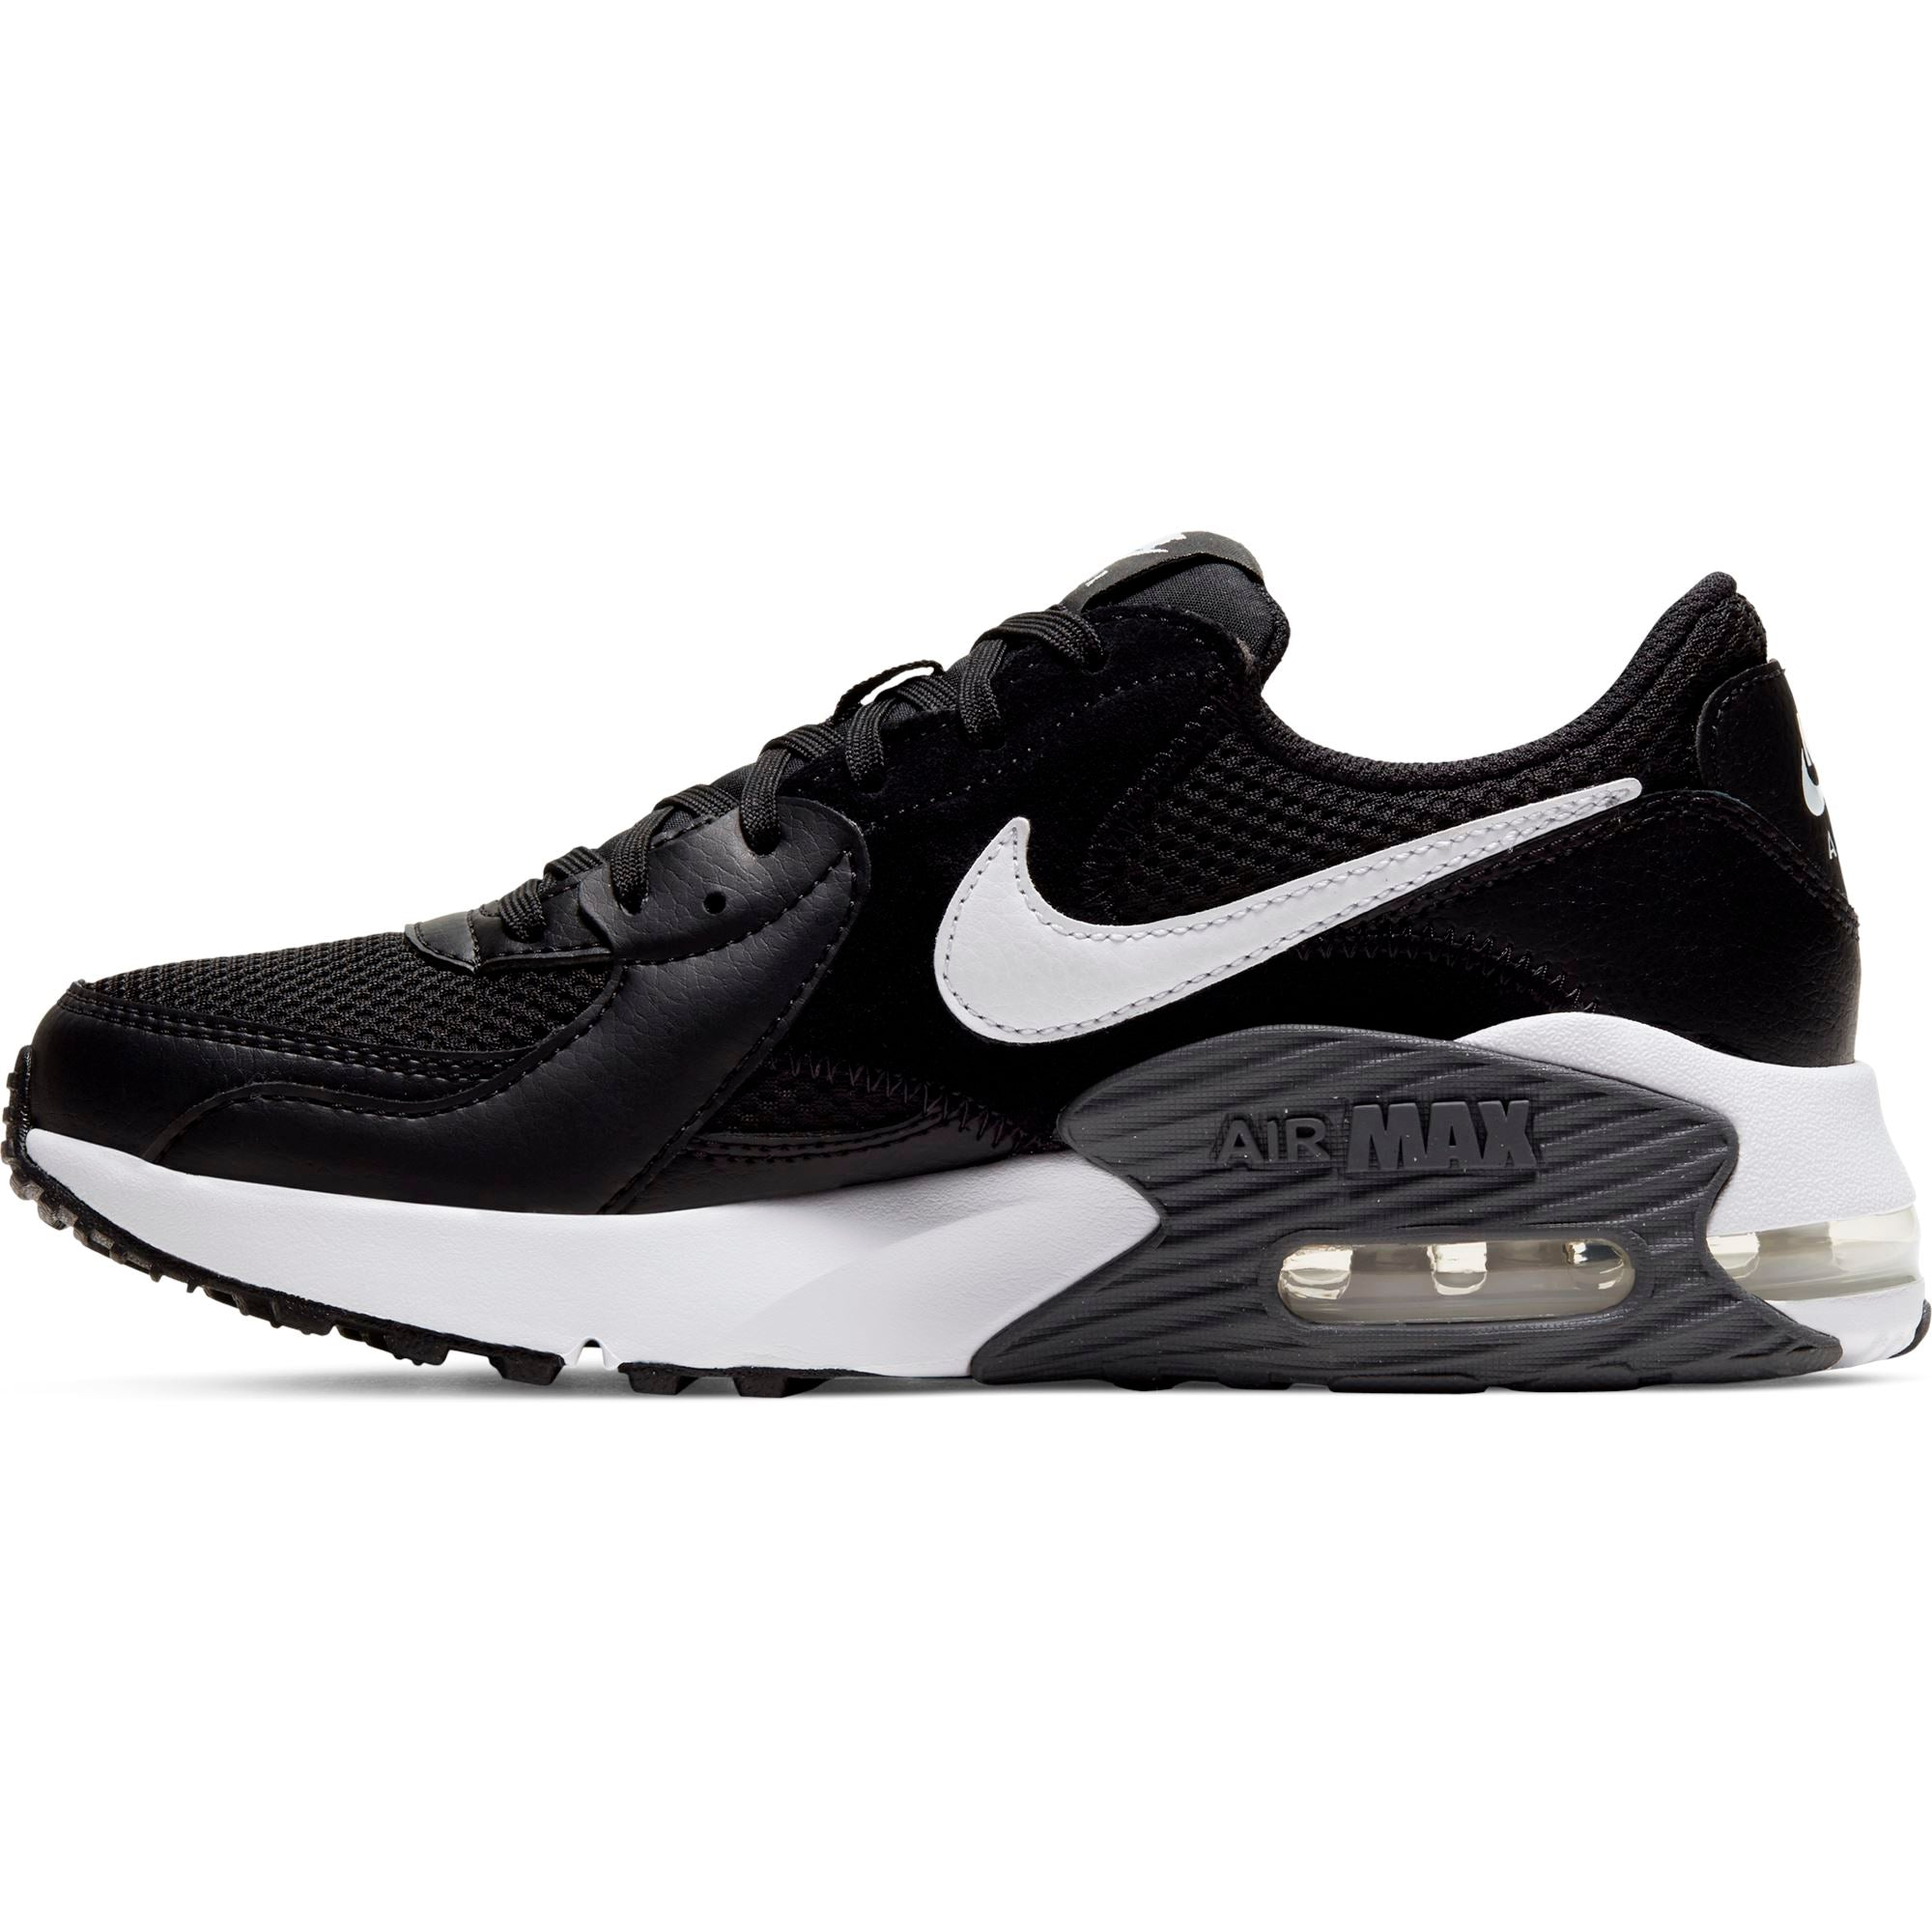 Nike Womens Air Max Excee - Black/White/Dark Grey SP-Footwear-Womens Nike